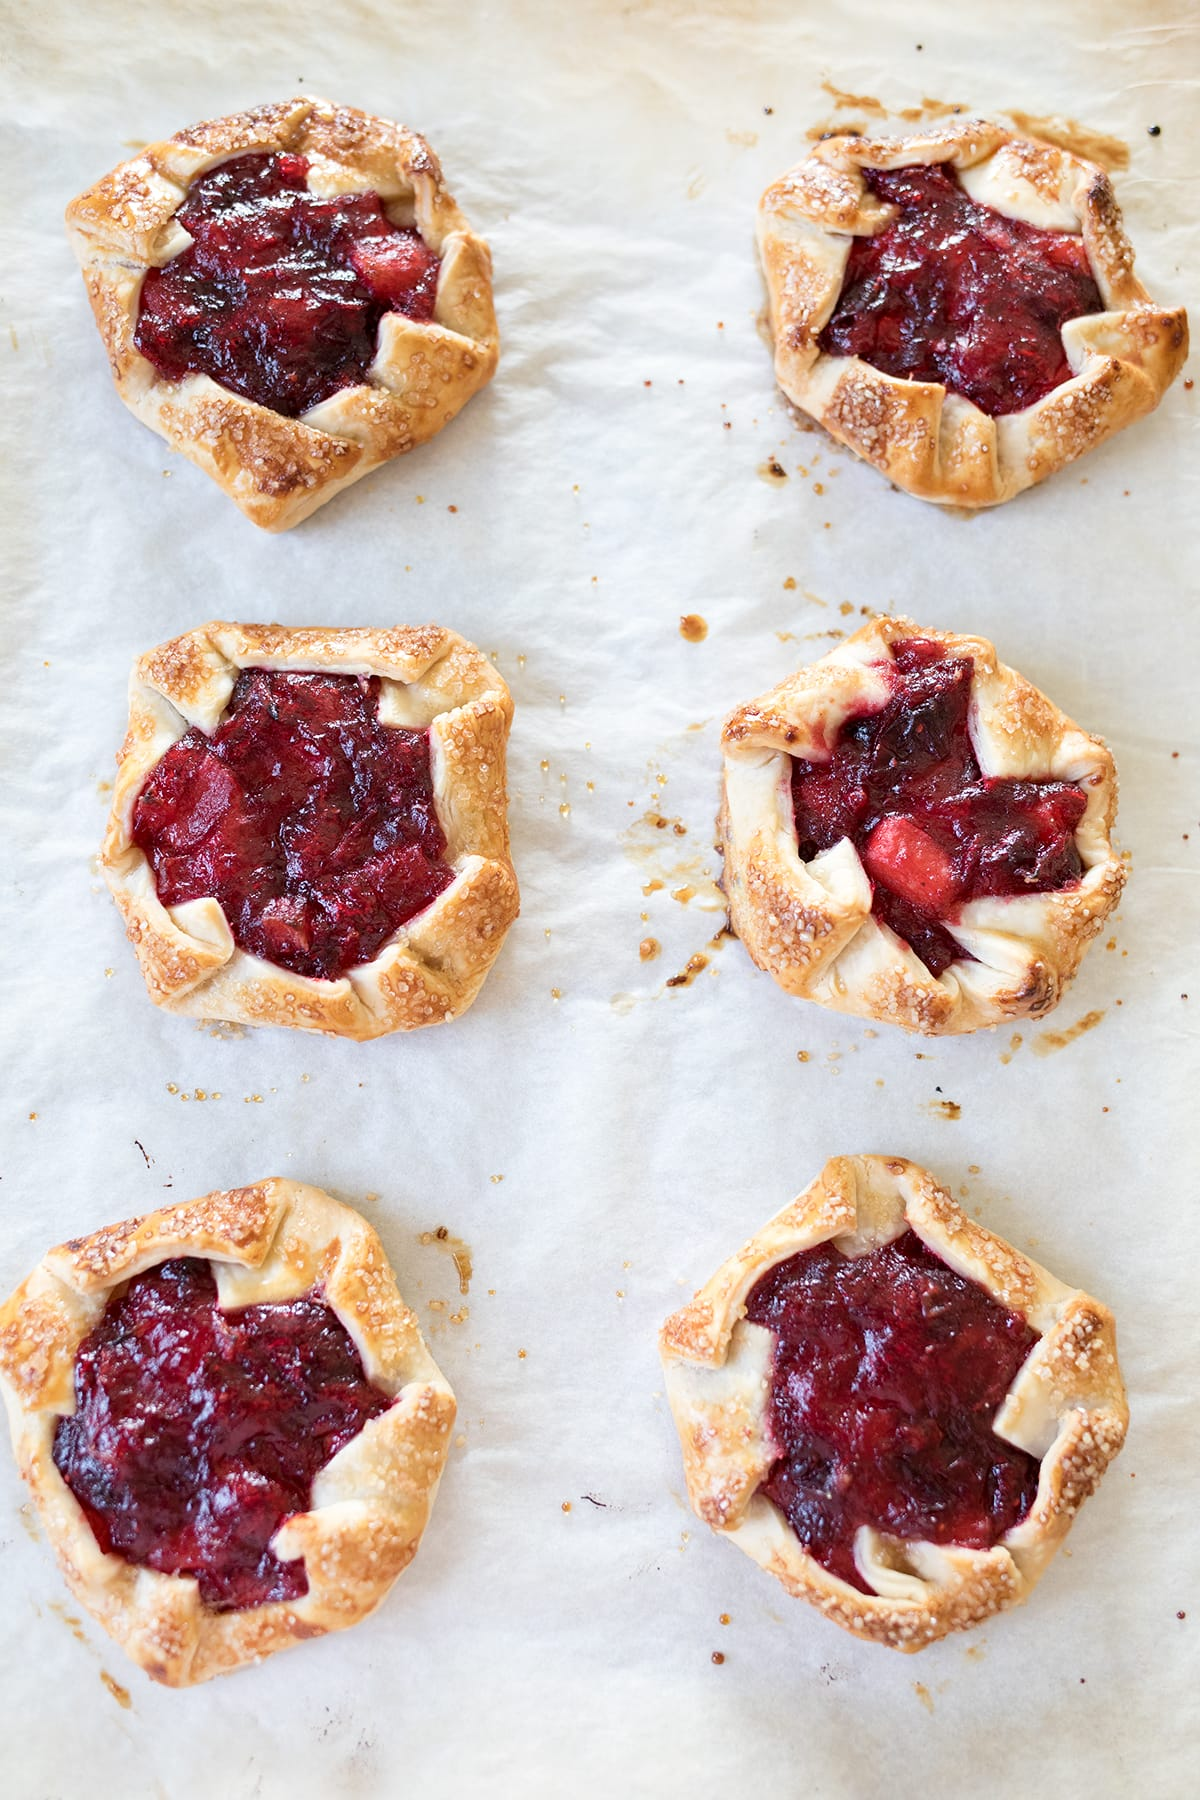 Easy Cranberry Apple Tarts #Thanksgiving #cranberrytart #easypie #thanksgivingpie